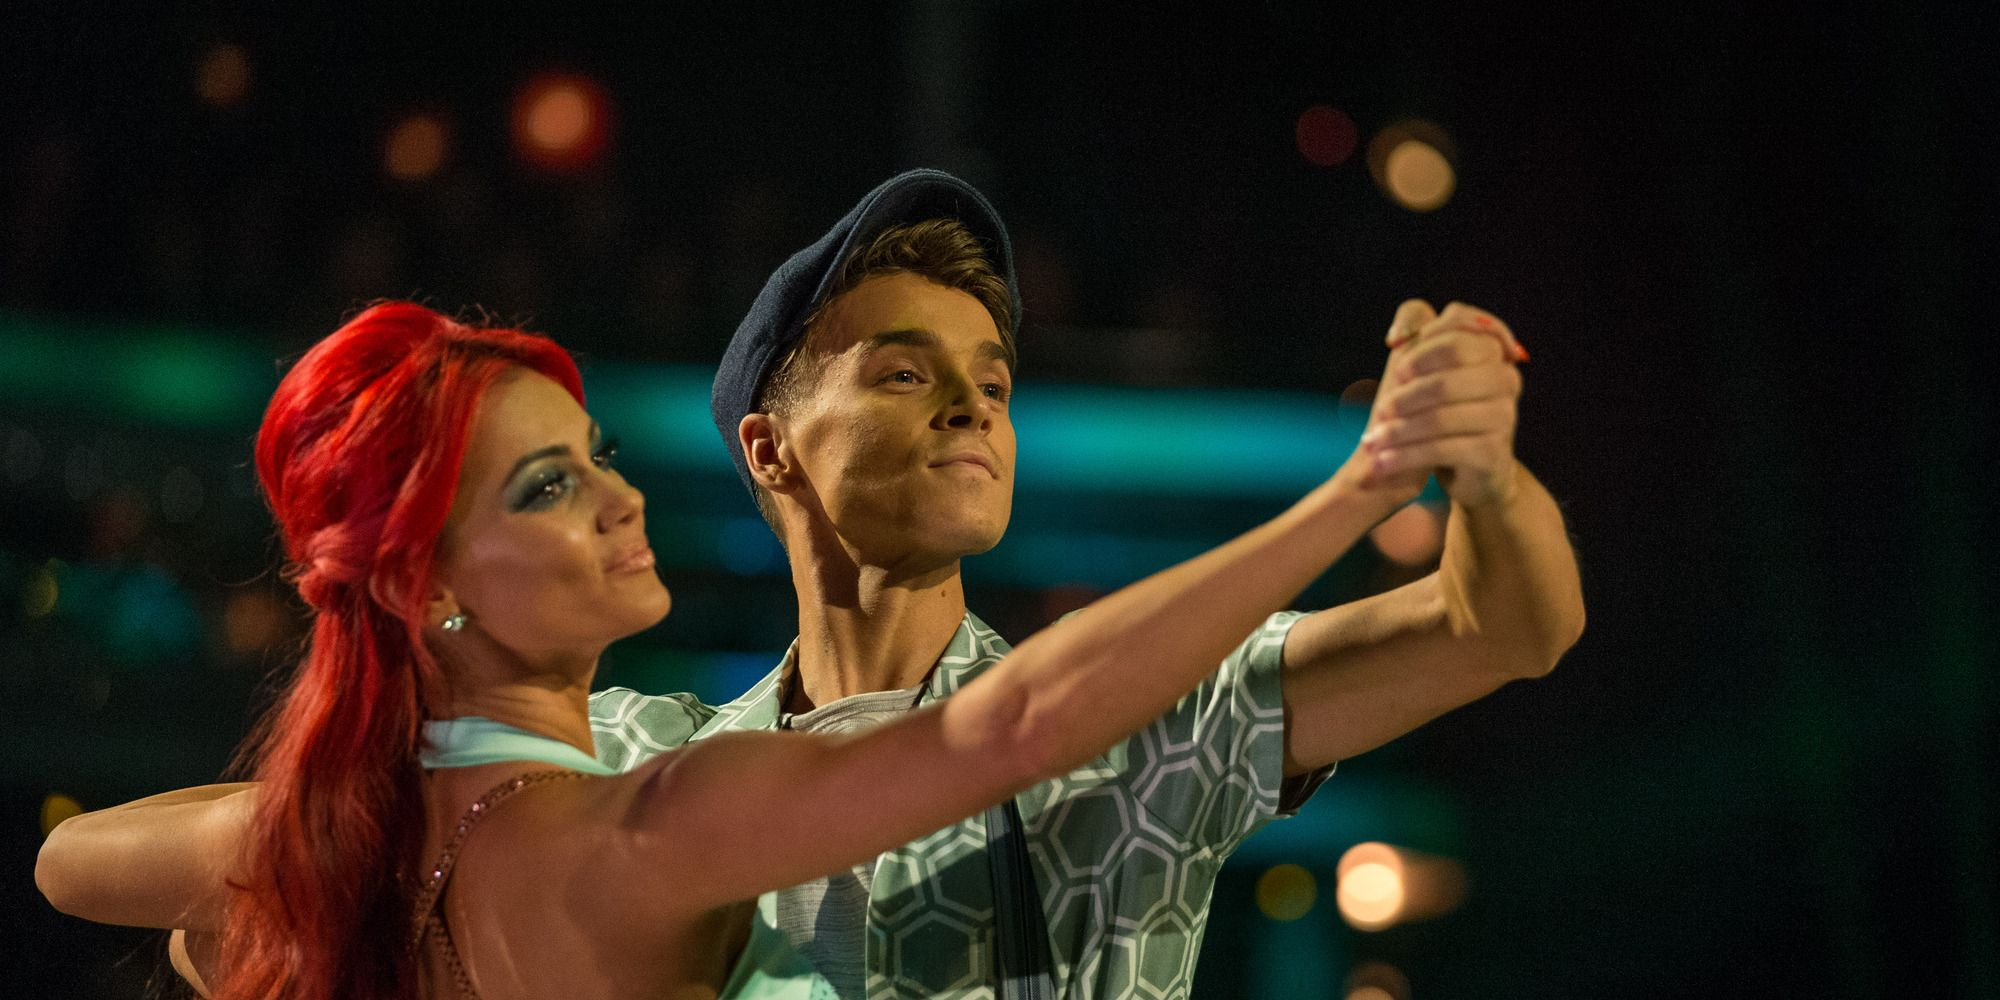 Strictly Come Dancing week 5: Joe Sugg and Dianne Buswell